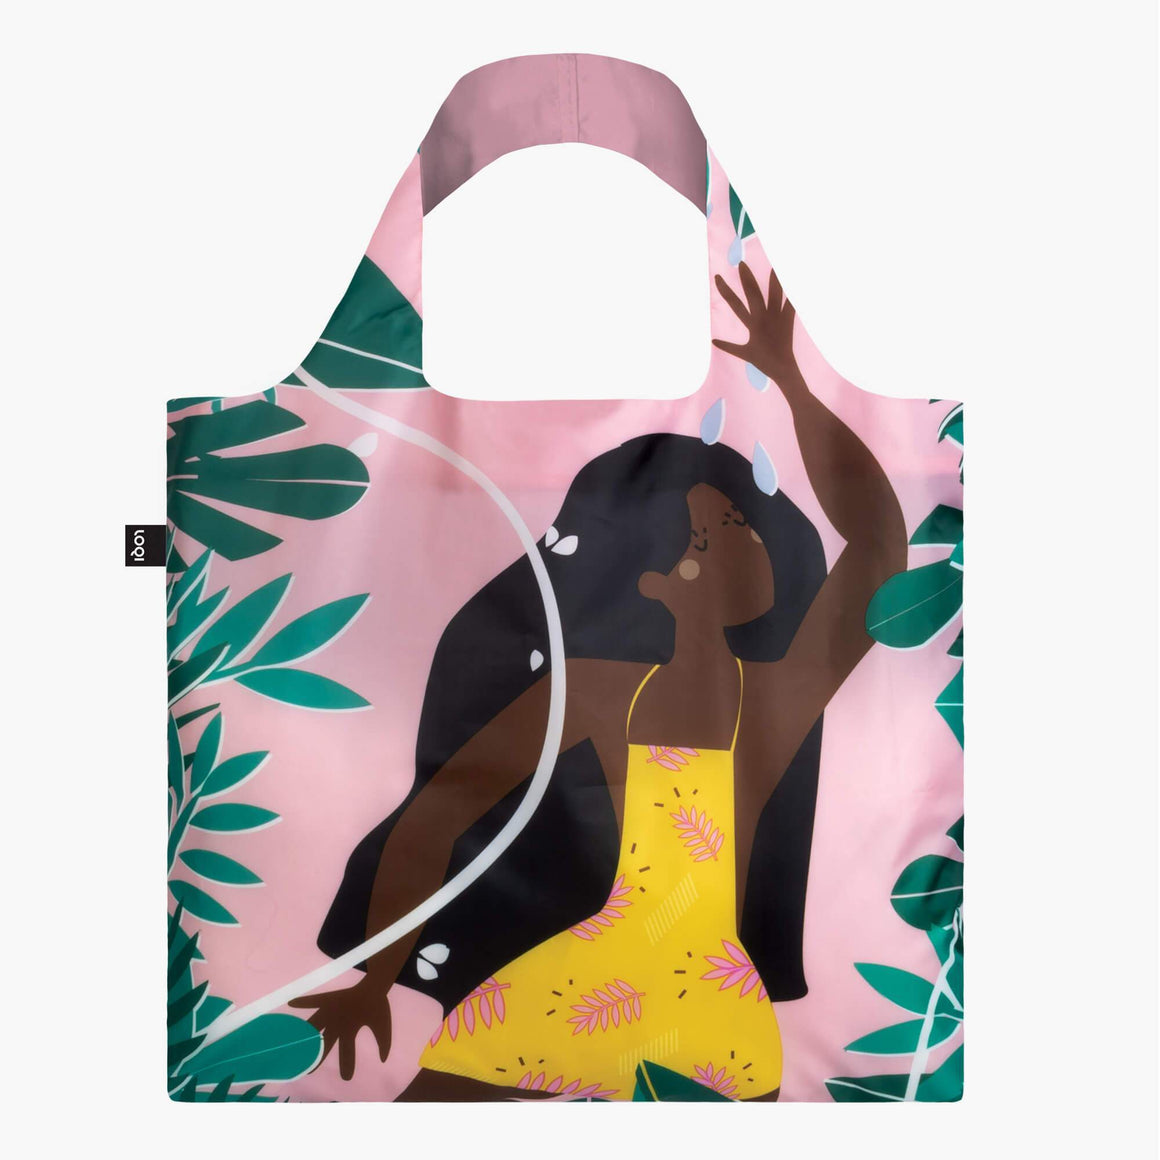 Tote Bag - CELESTE WALLAERT Joyful & Free